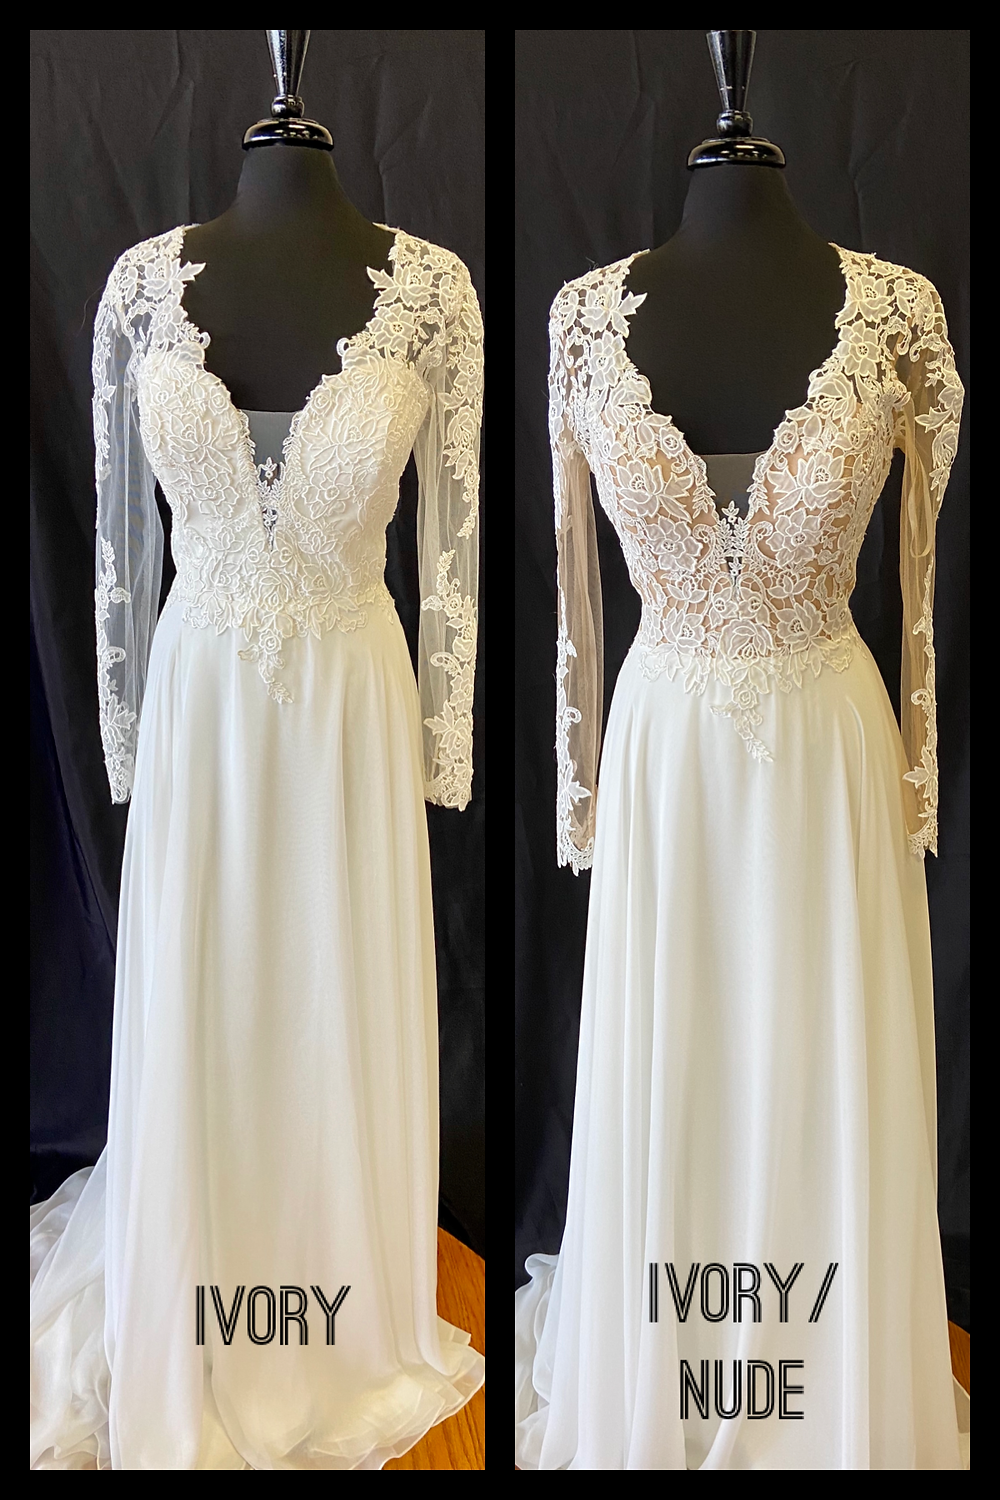 Wedding dress with lace sleeves Austin, TX